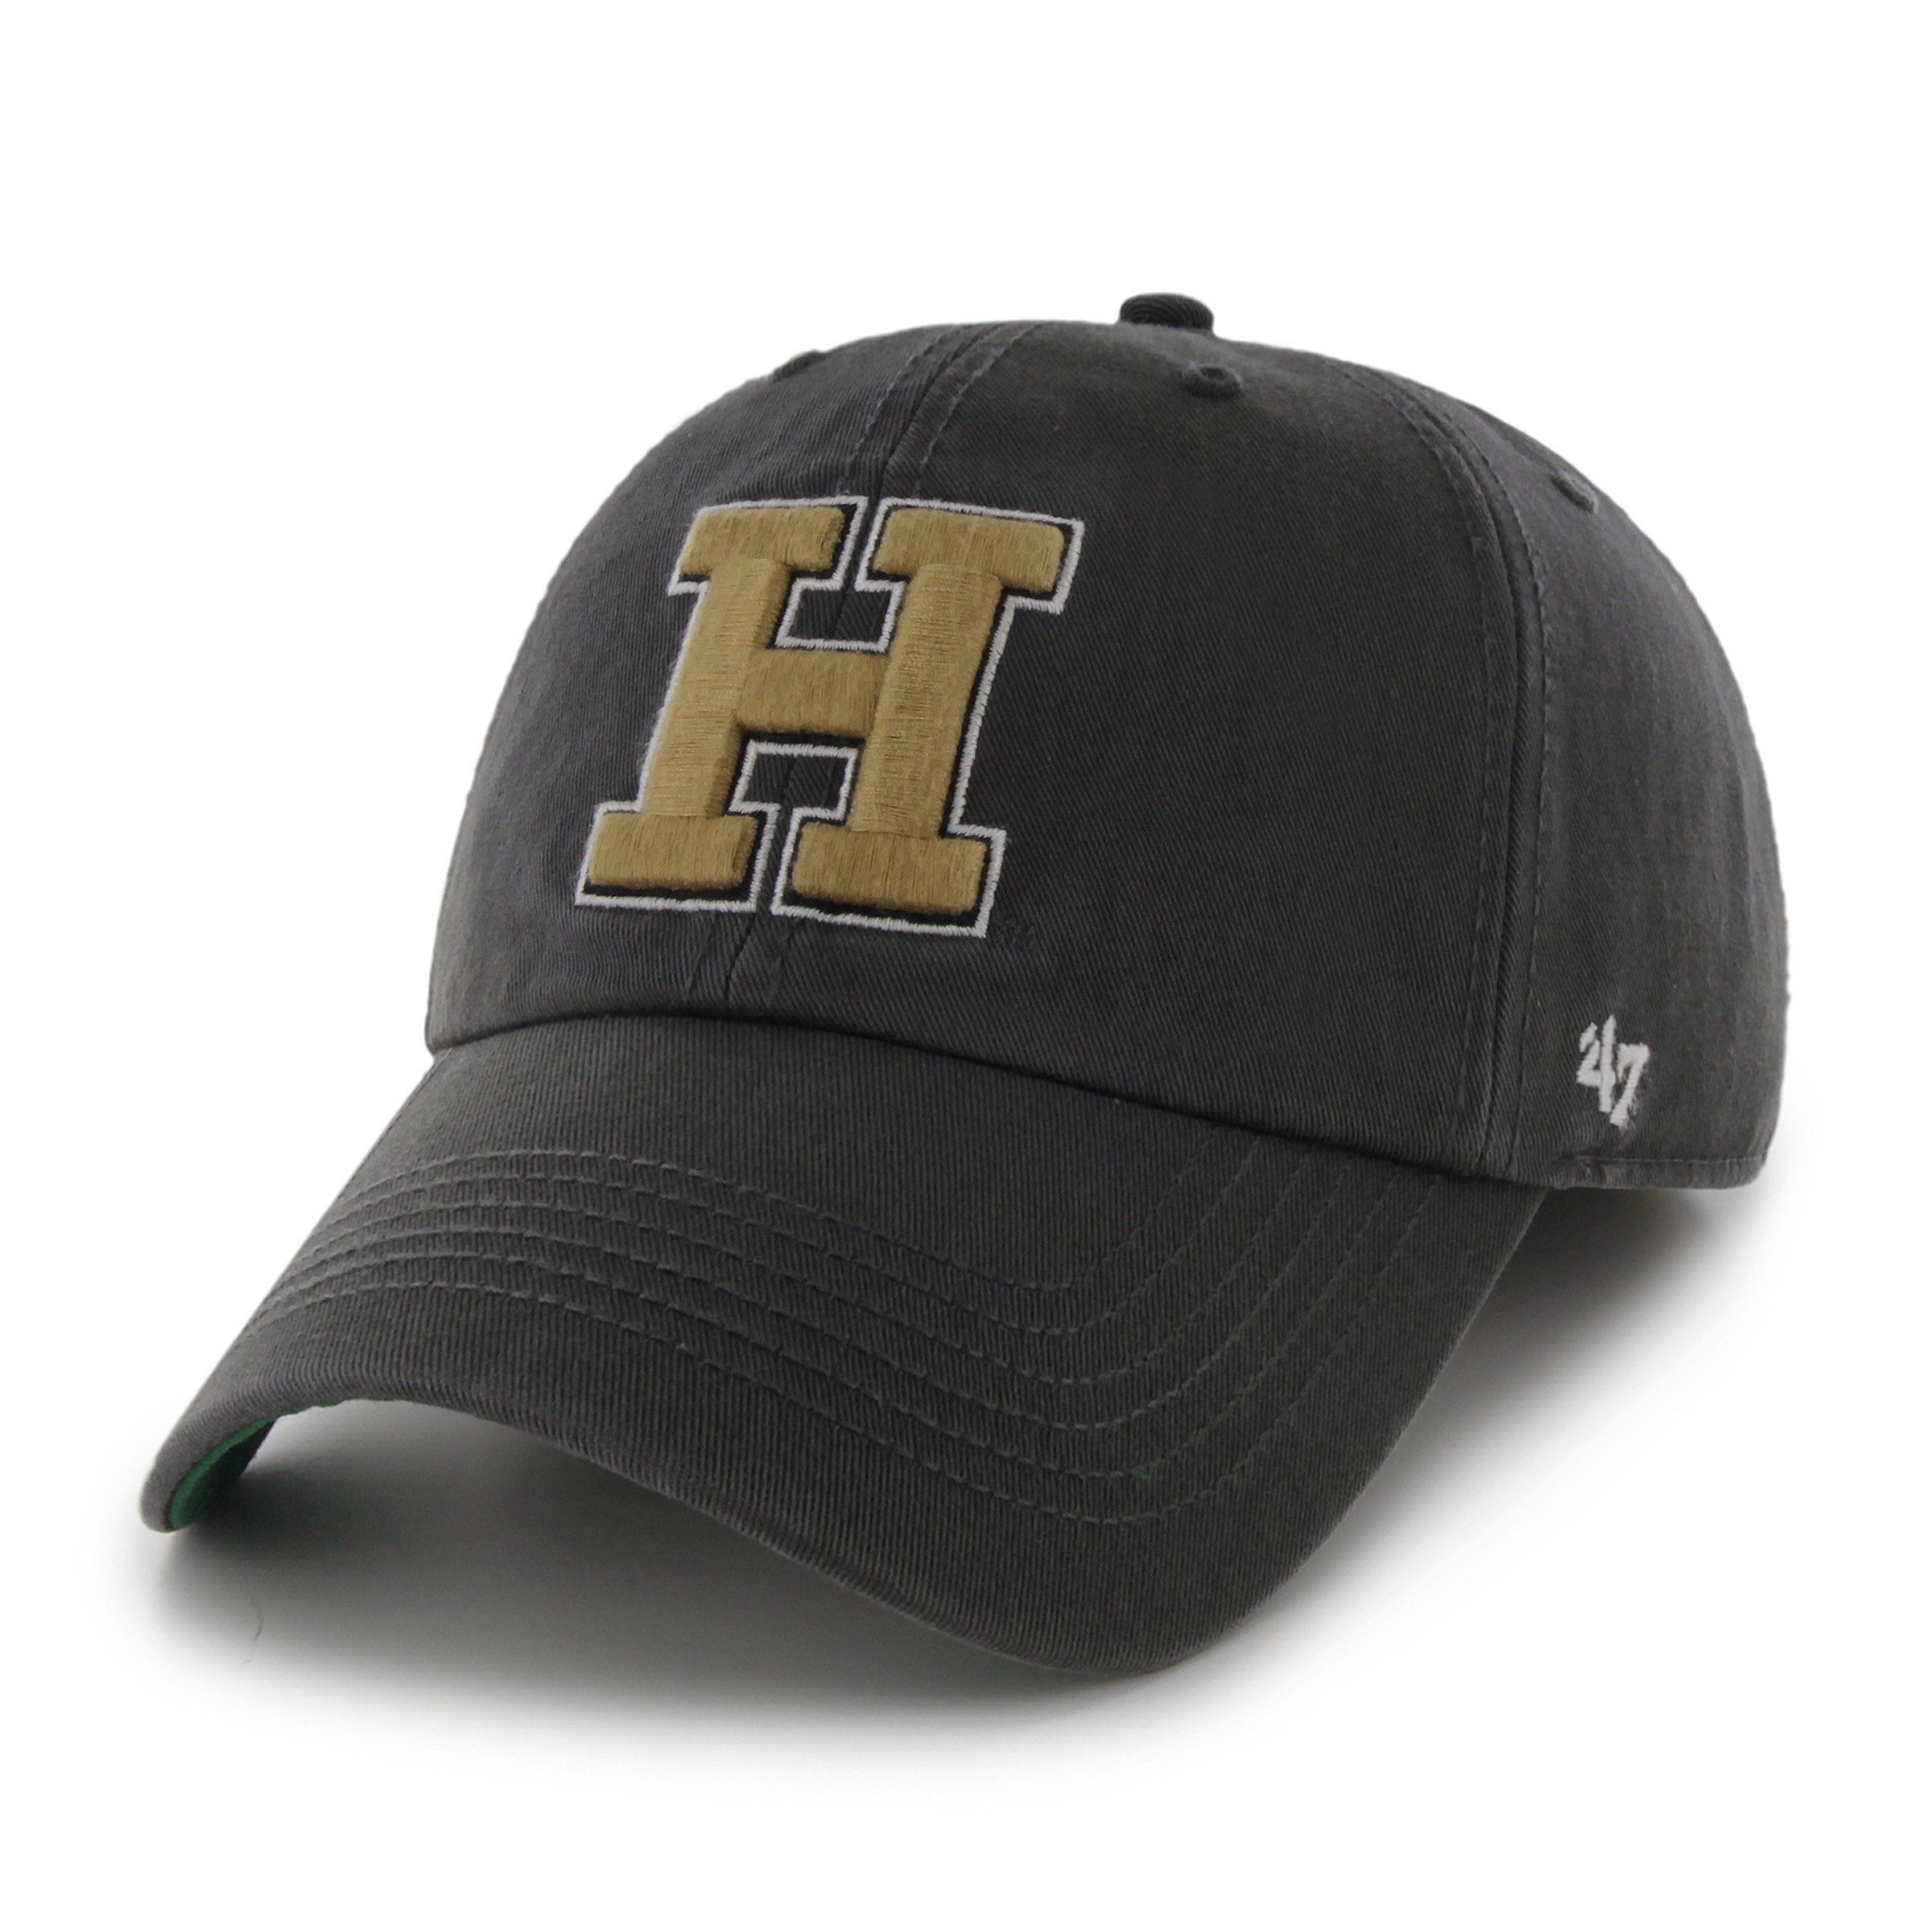 7d483d1db11 Galleon -  47 NCAA Harvard Crimson Franchise Fitted Hat